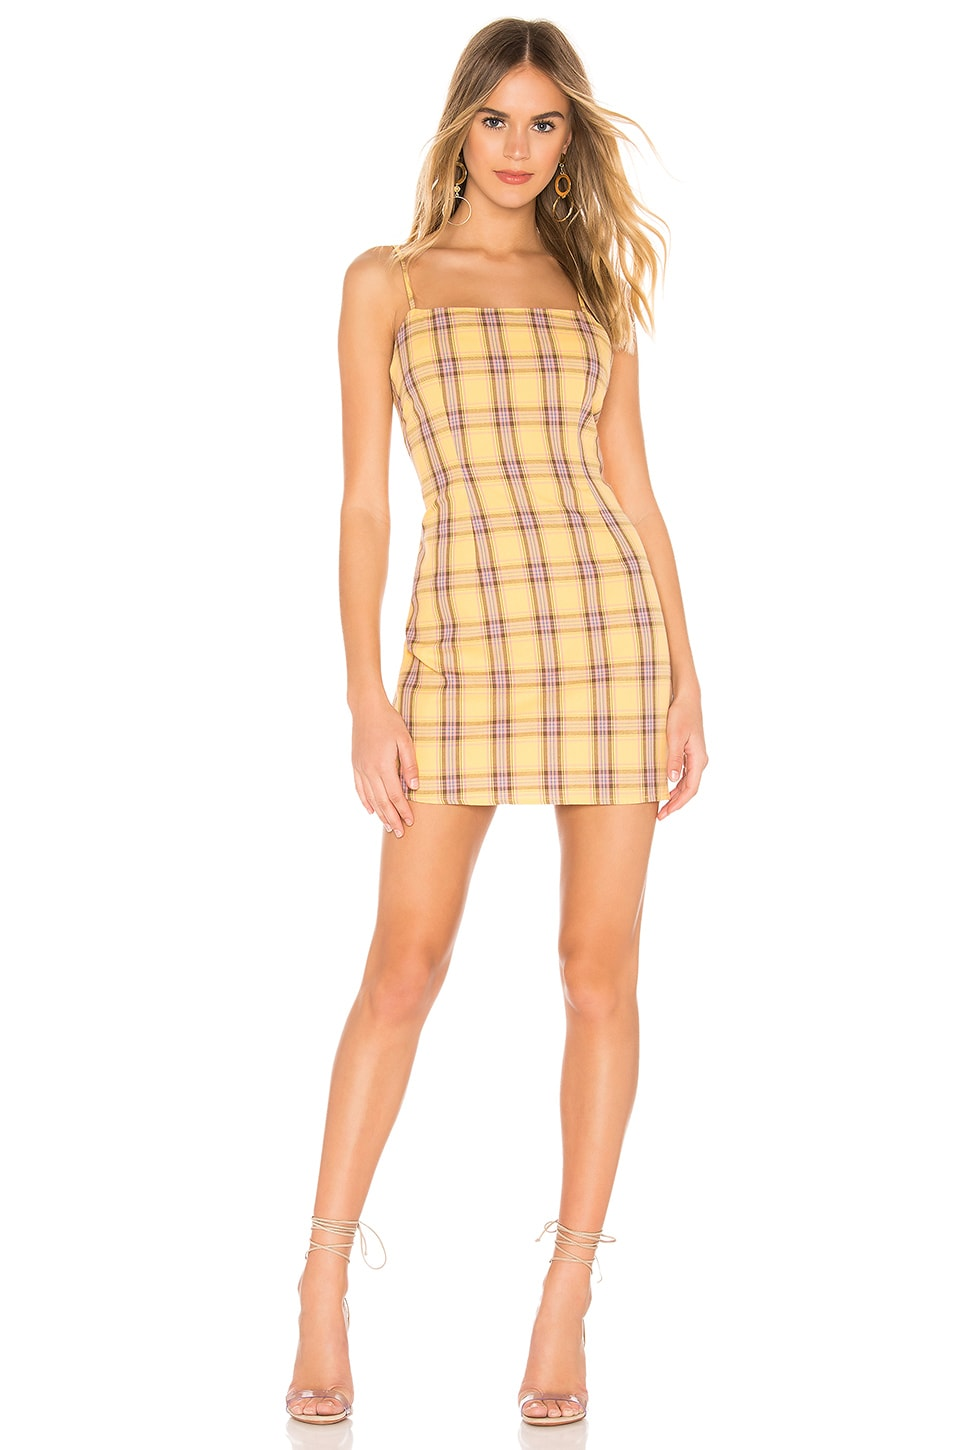 BB Dakota Total Betty Dress in Lemon Drop